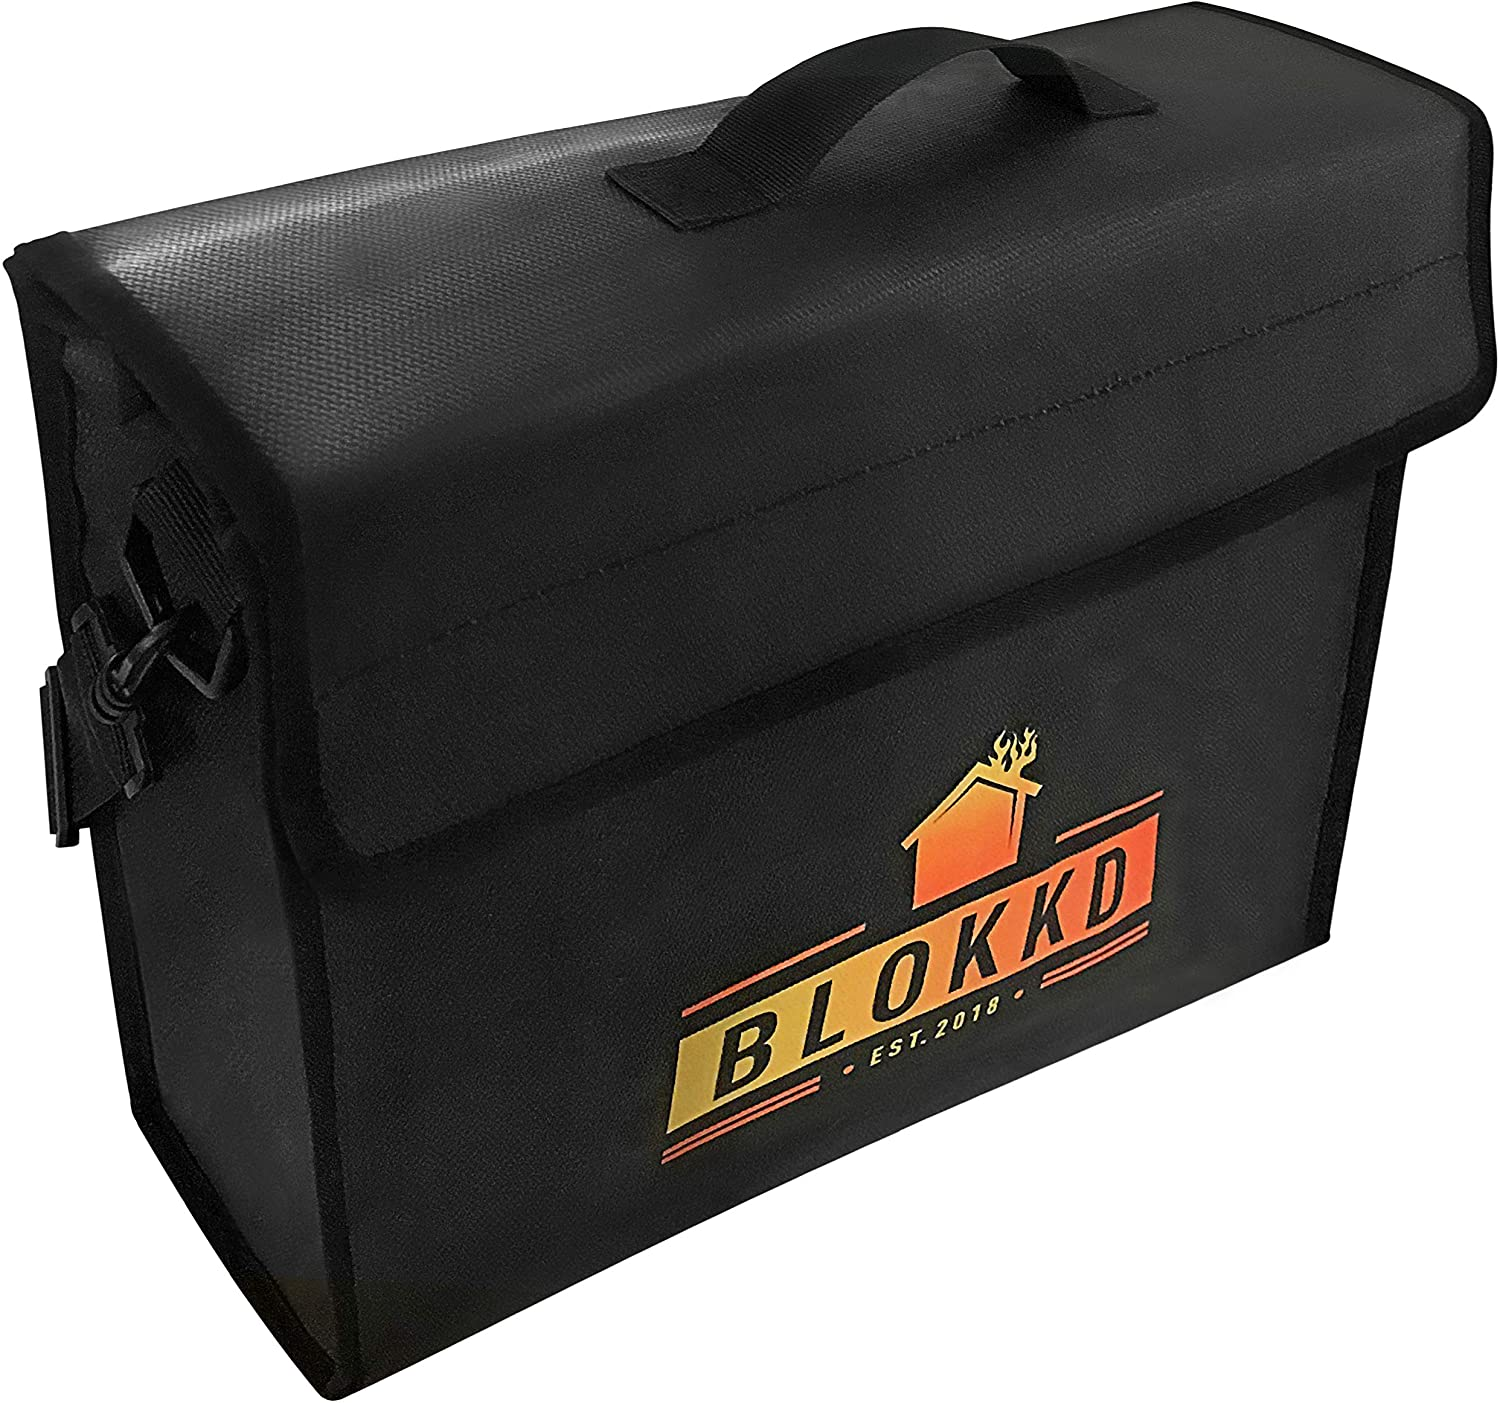 BLOKKD Fireproof Document Bags - Fire Safe Lock Box Bag